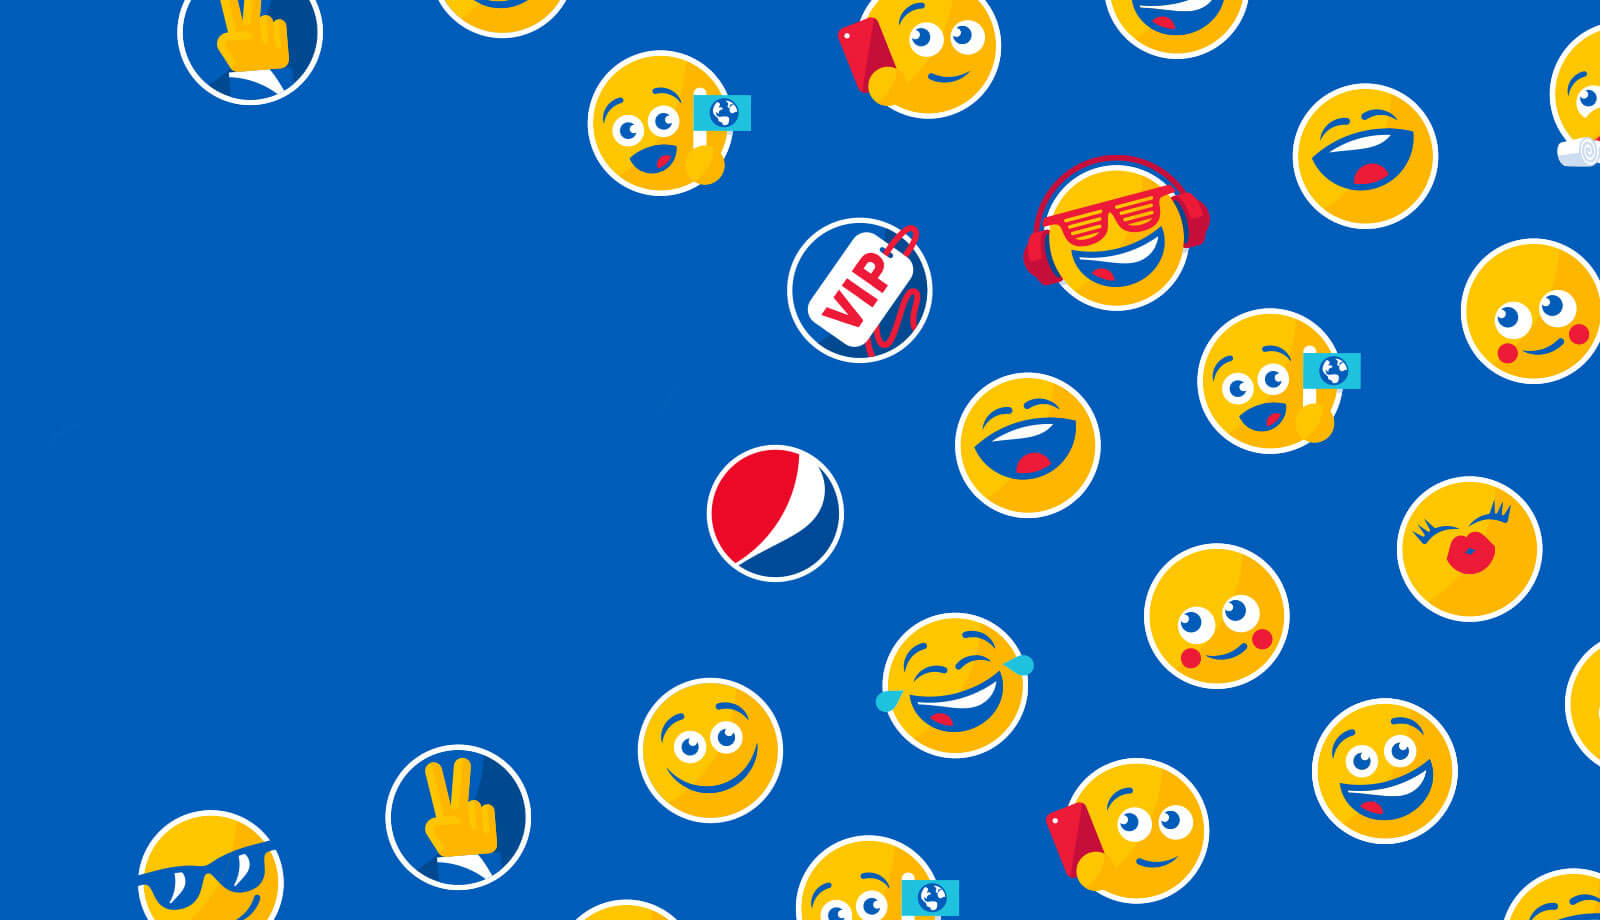 Digital Stickers Are Reshaping Global Brand Advertising